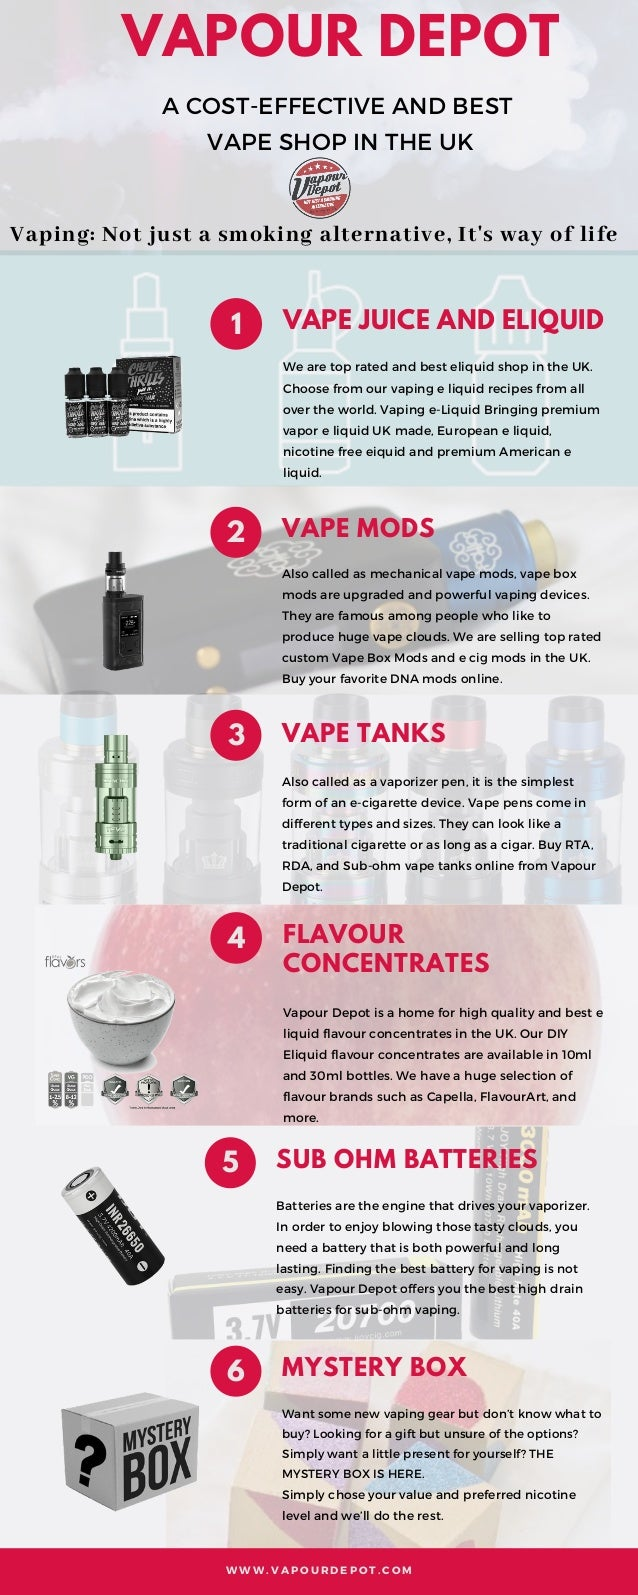 Vapour Depot: A Cost Effective and Best Vape Shop In The UK